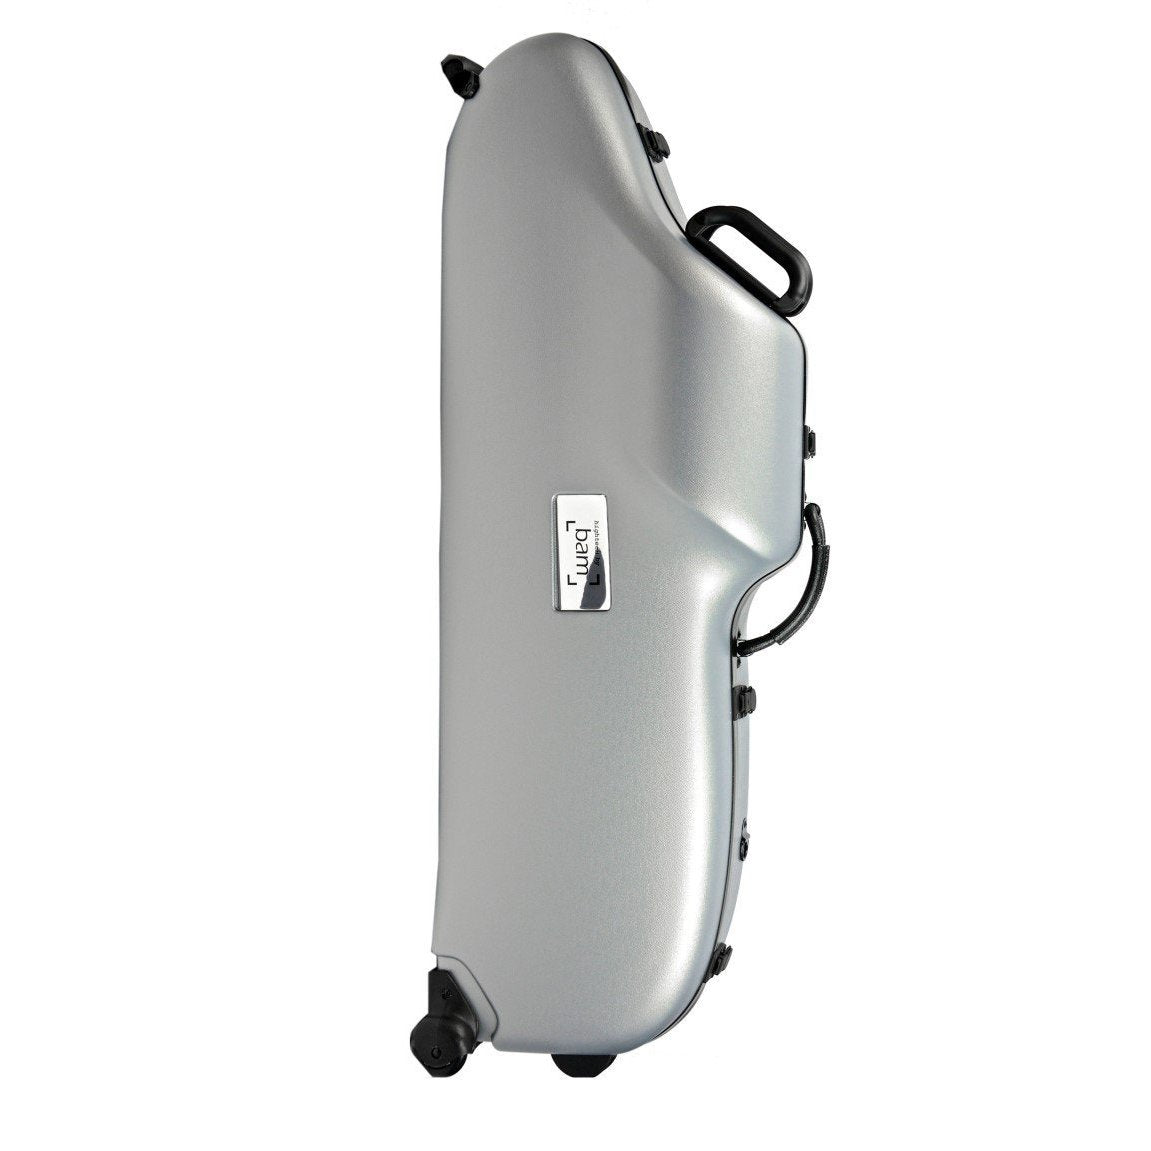 Bam - Hightech Baritone Saxophone Case-Case-Bam-Music Elements